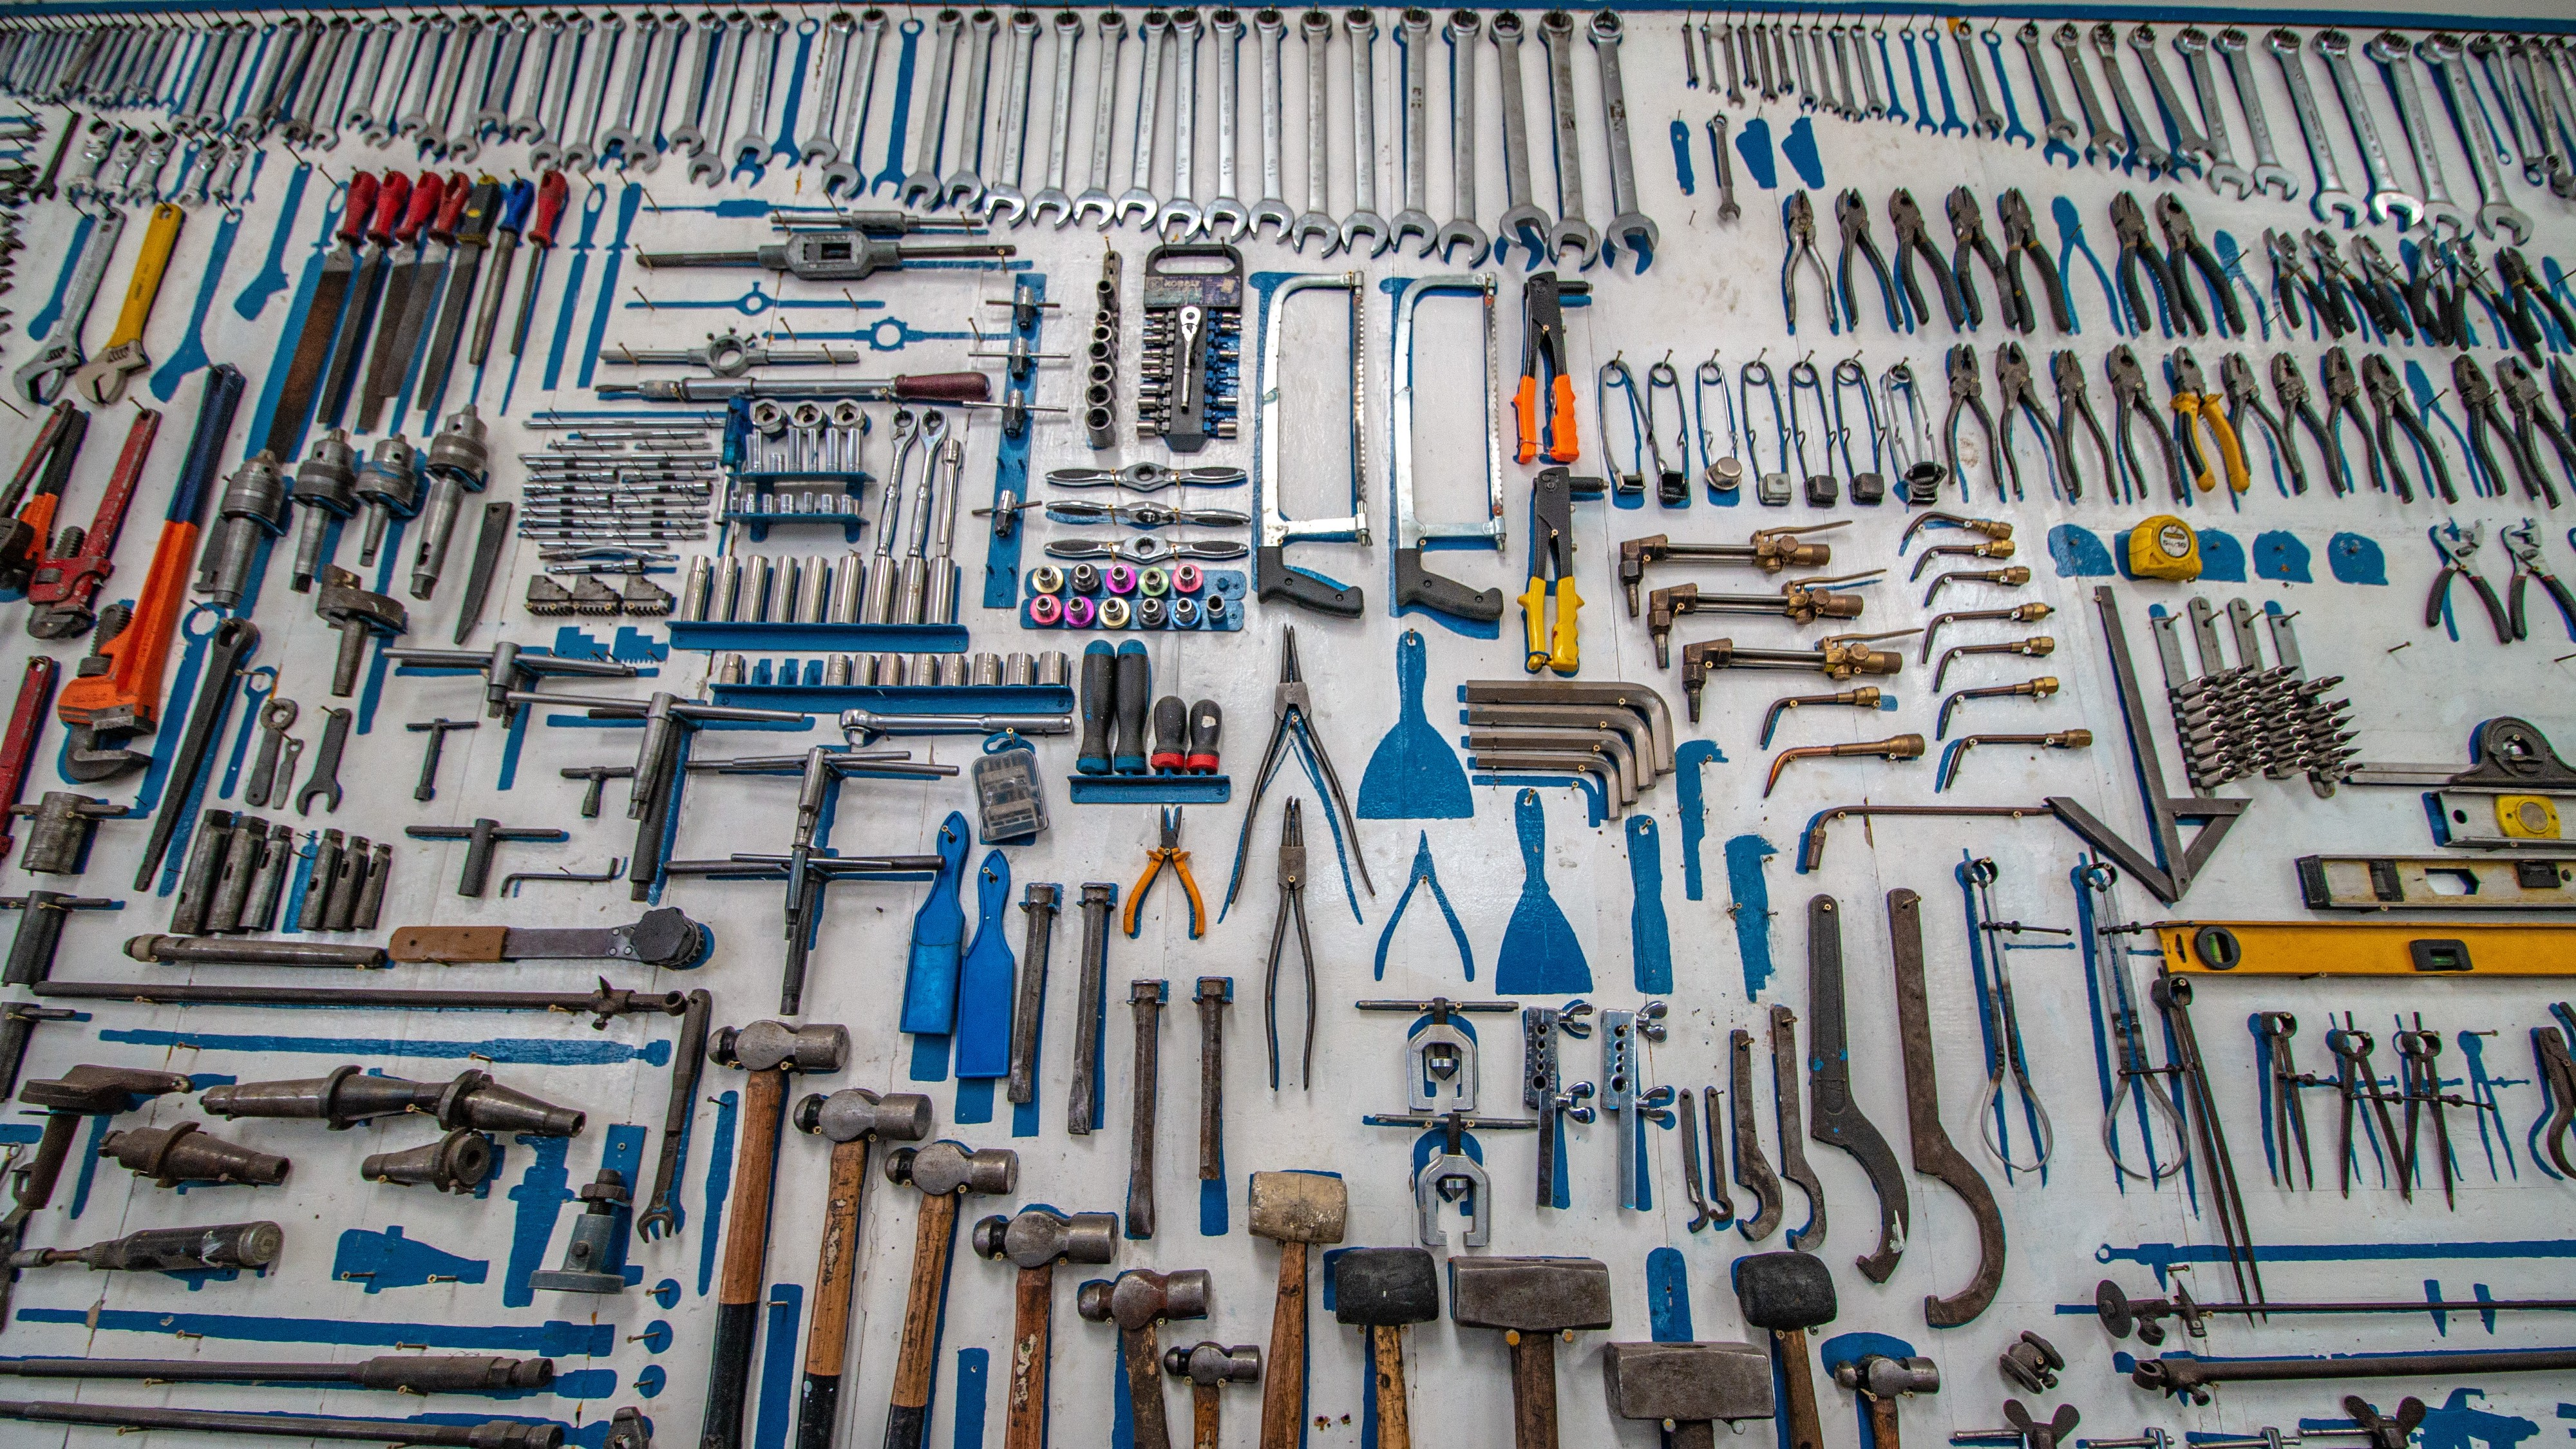 Passionate about Maintenance? A blog for insights, information, discussion and learning.